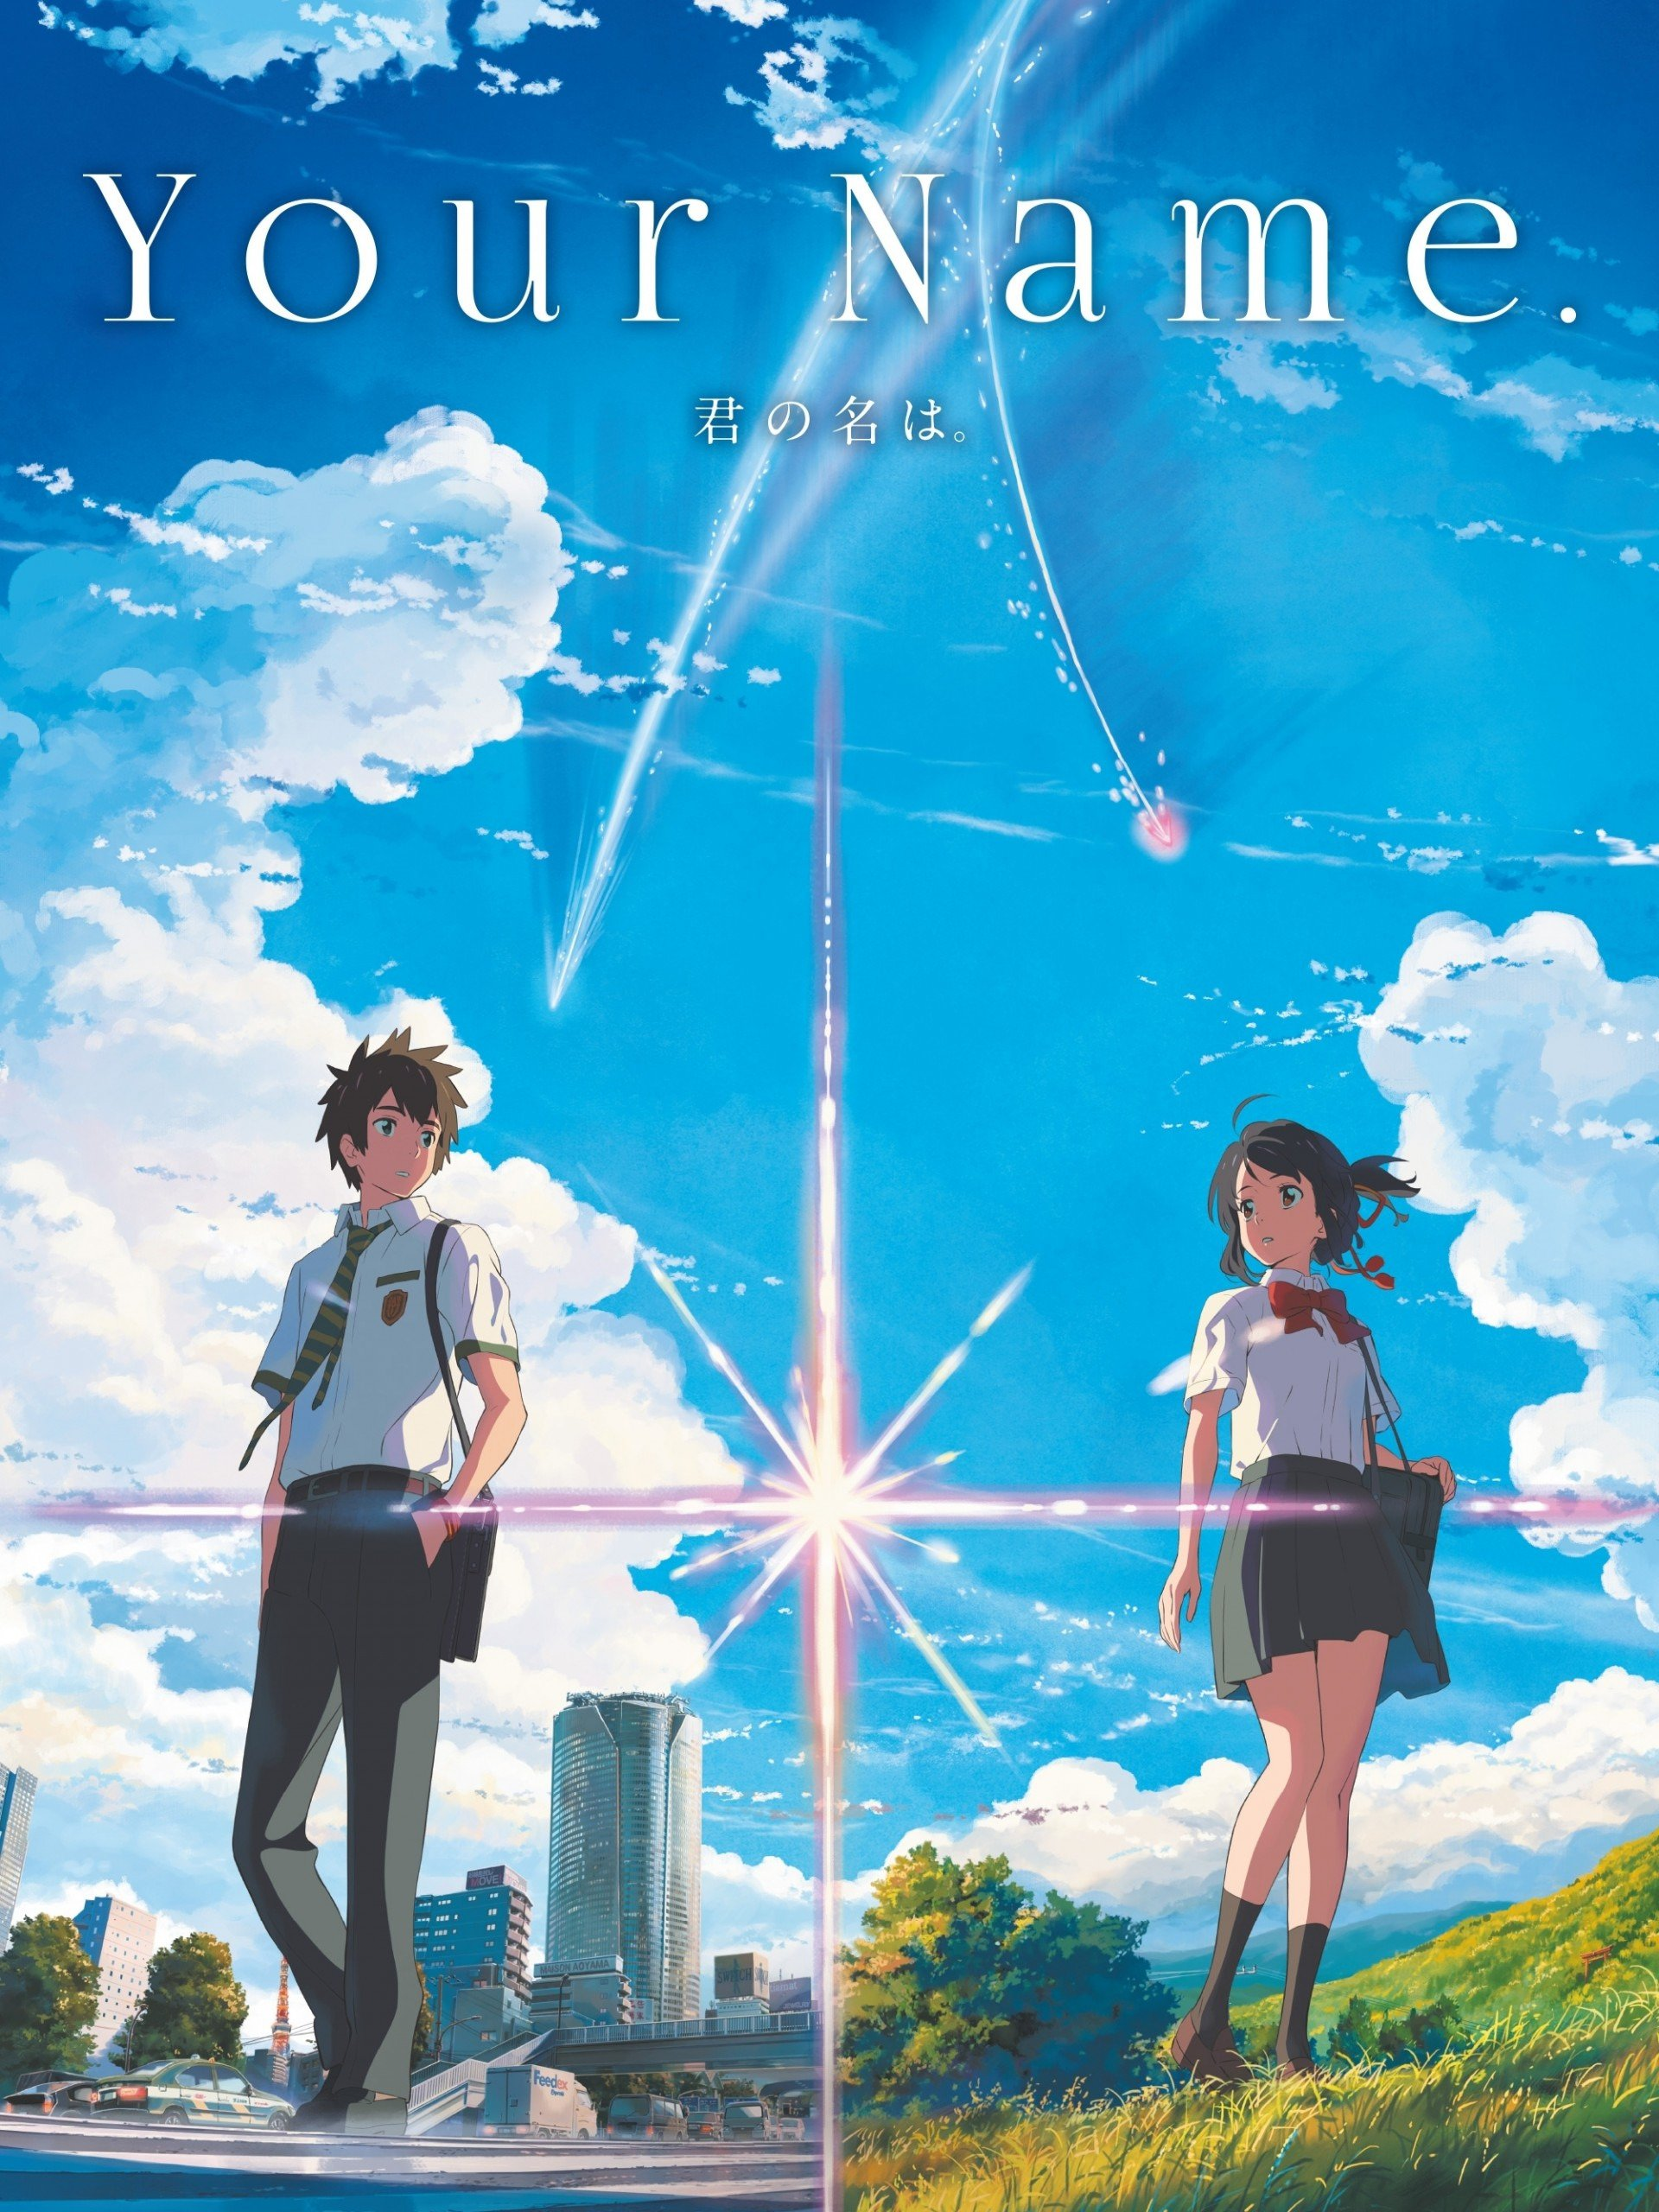 watch kimi no na wa english subbed in hd on 9animeto your name online for free high quality late.html